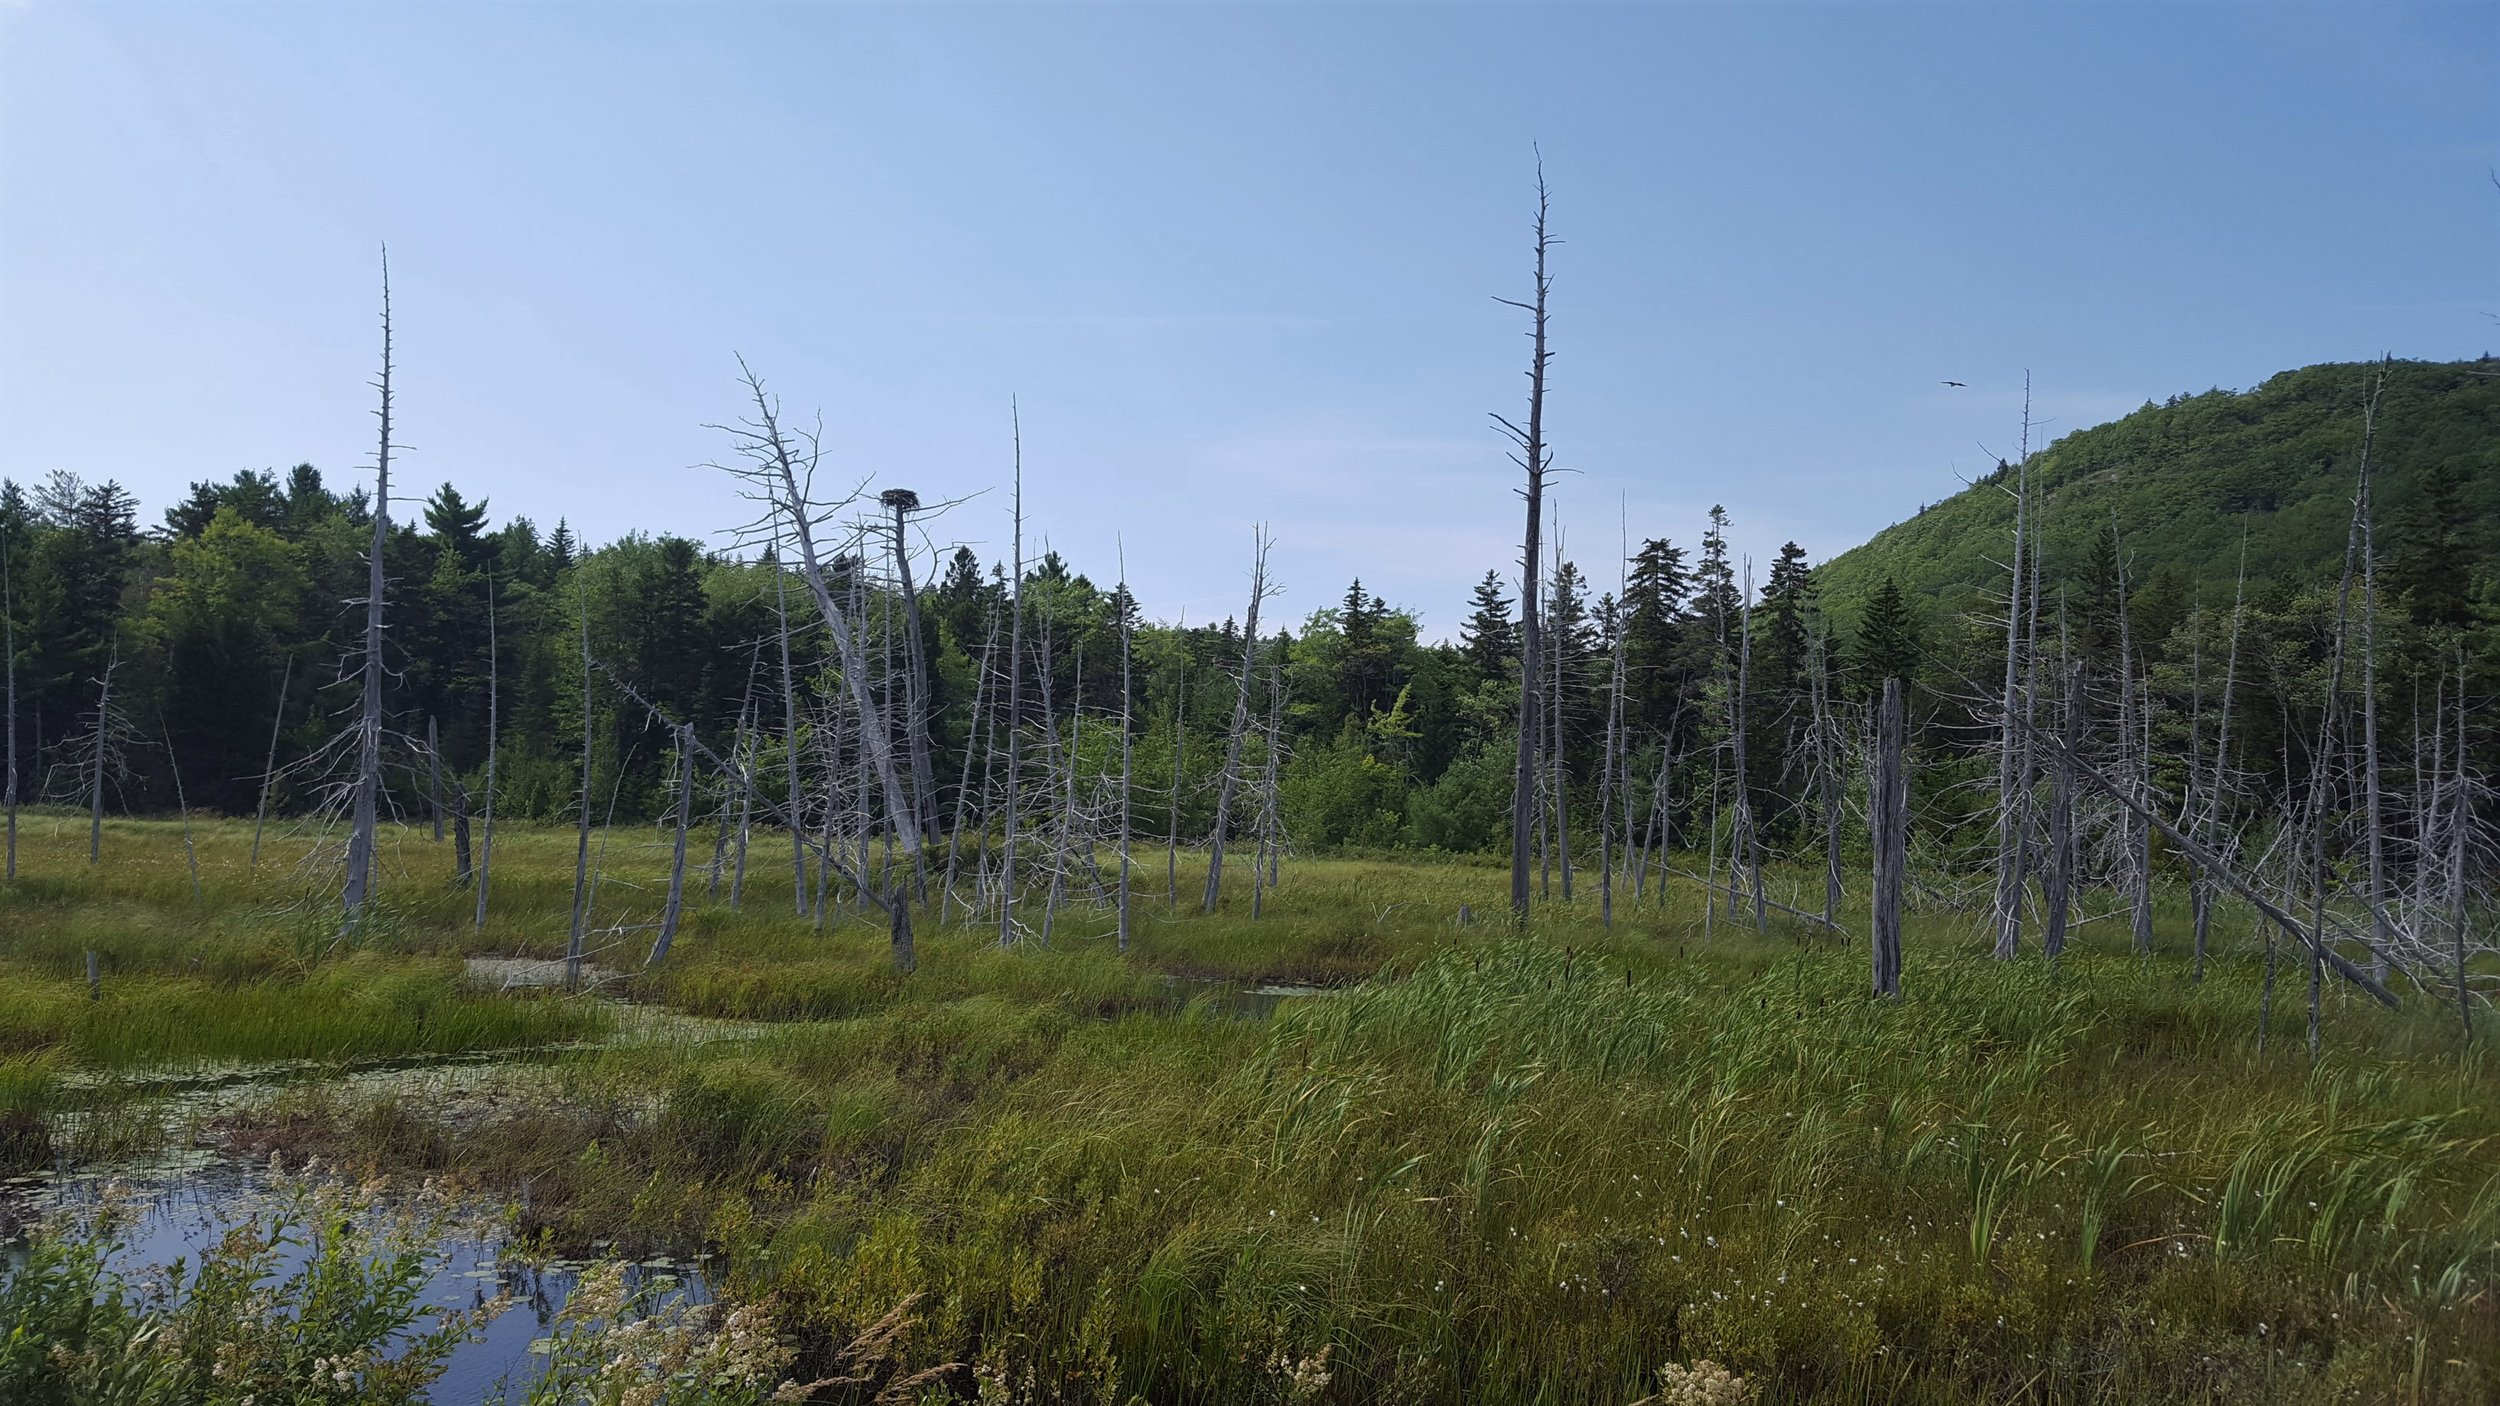 The osprey nest. Notice the osprey in the top right quadrant of the picture